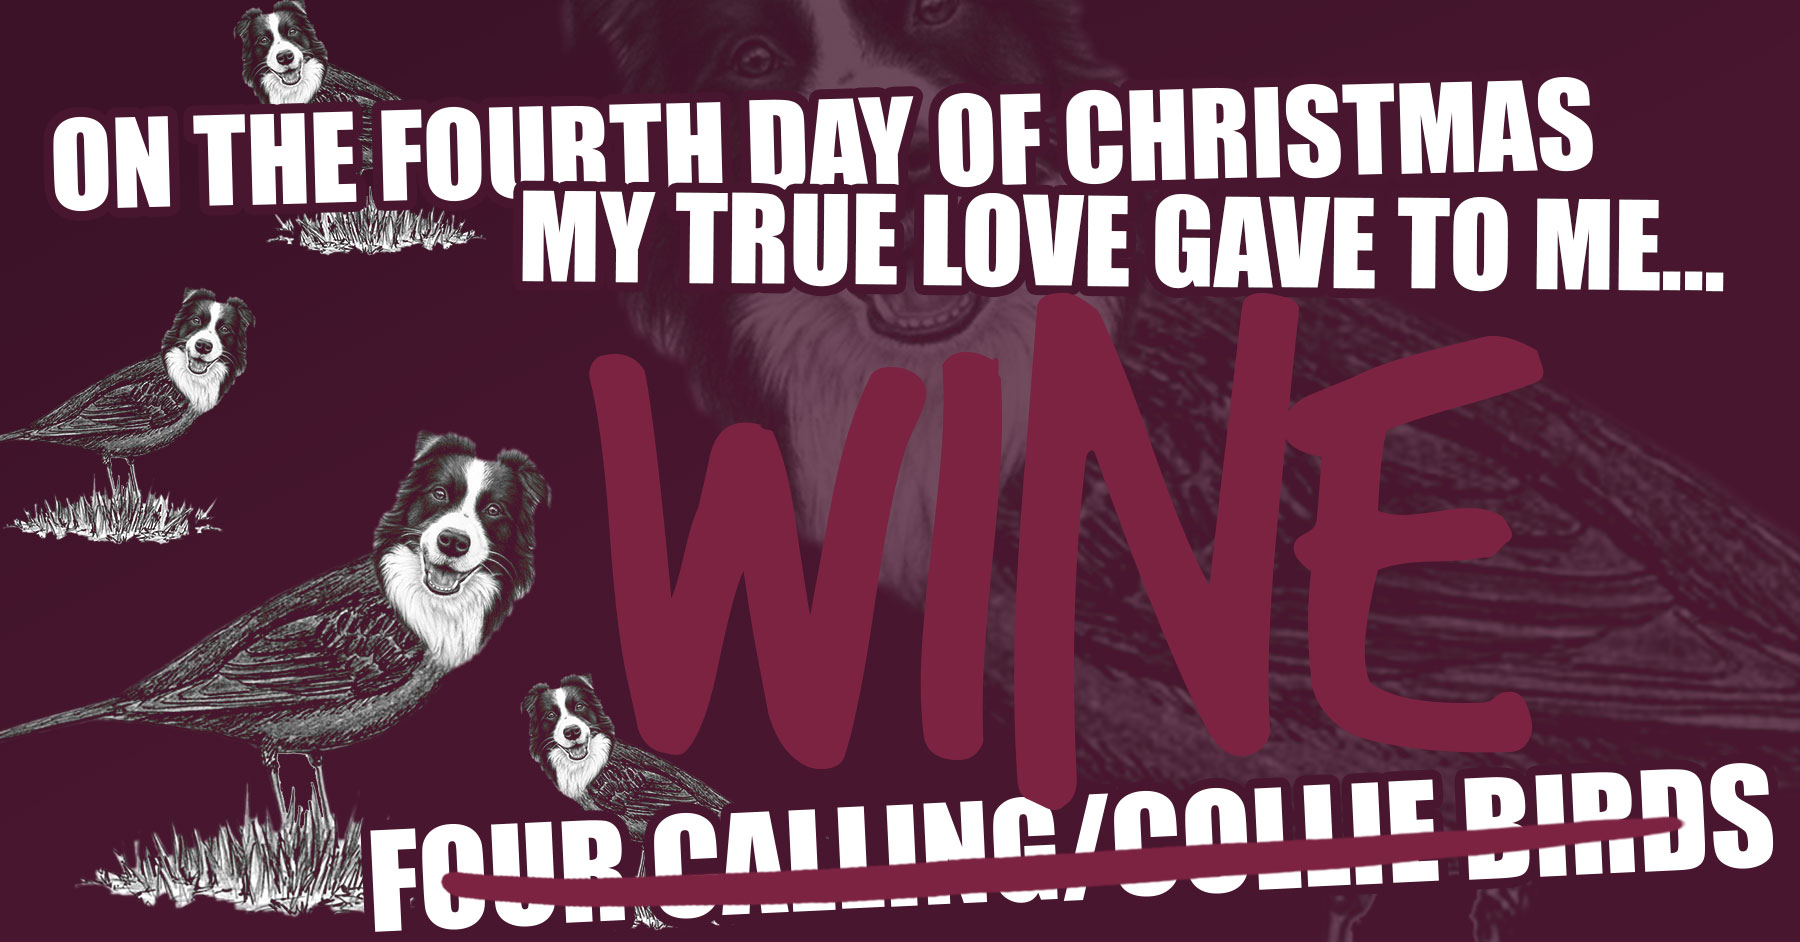 12 Days of Christmas. 4 Calling Birds (Collie Birds?). wine.